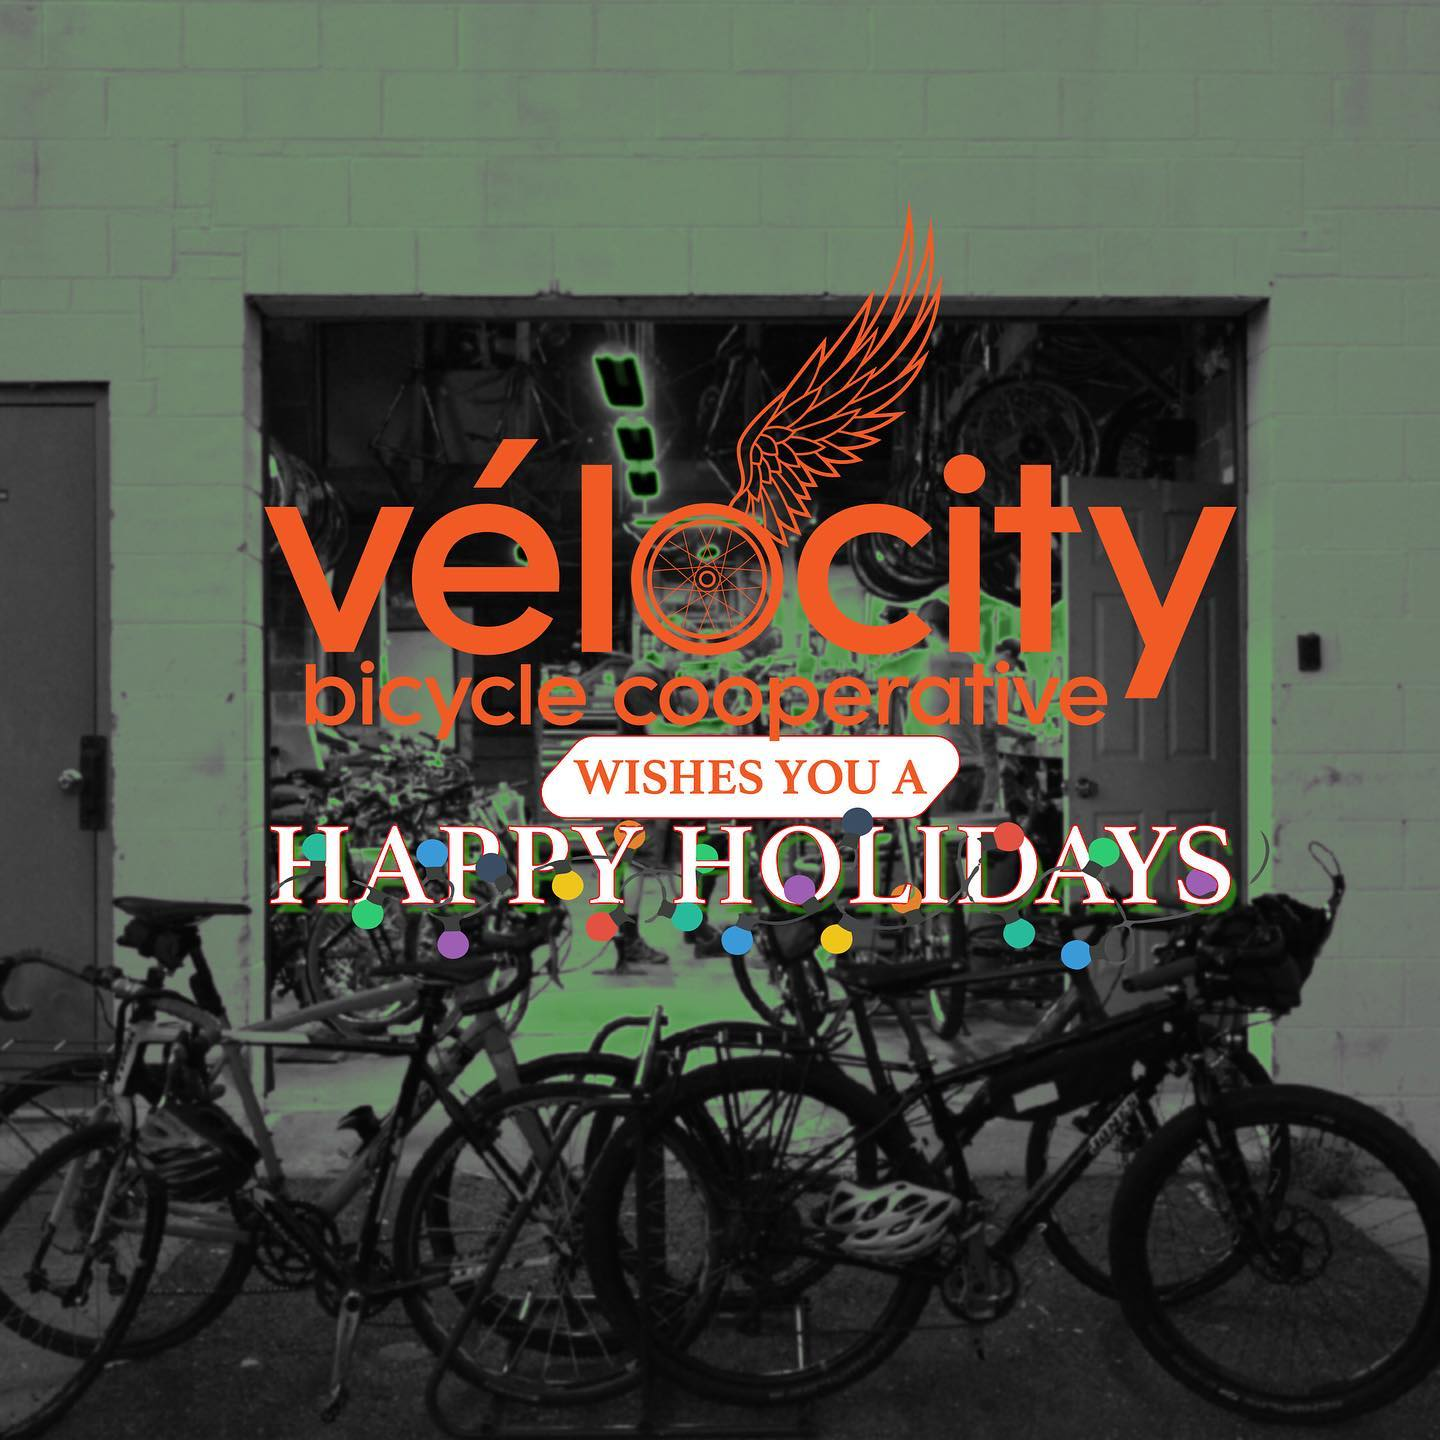 Vélocity shop closed Dec 24-26, 2020 and Jan 1, 2021